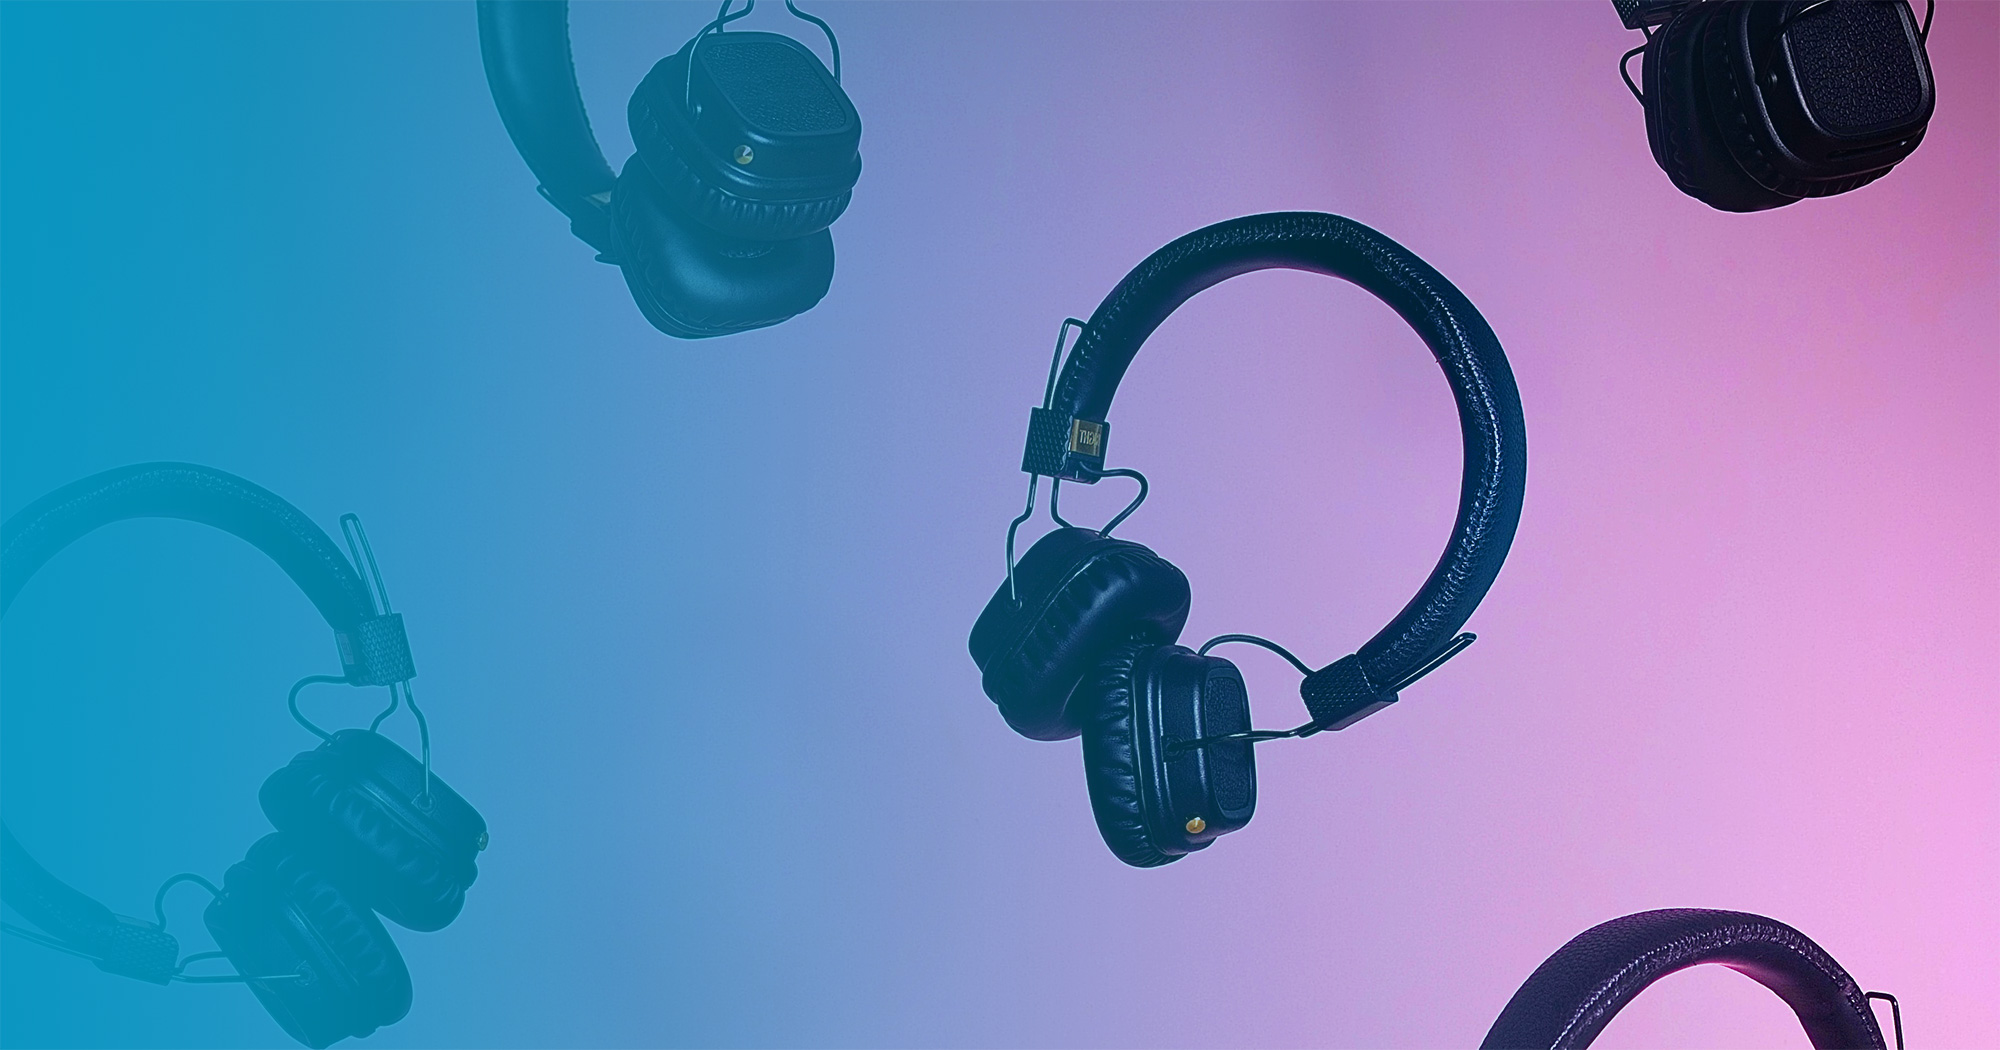 Multiple headphones floating on pink background